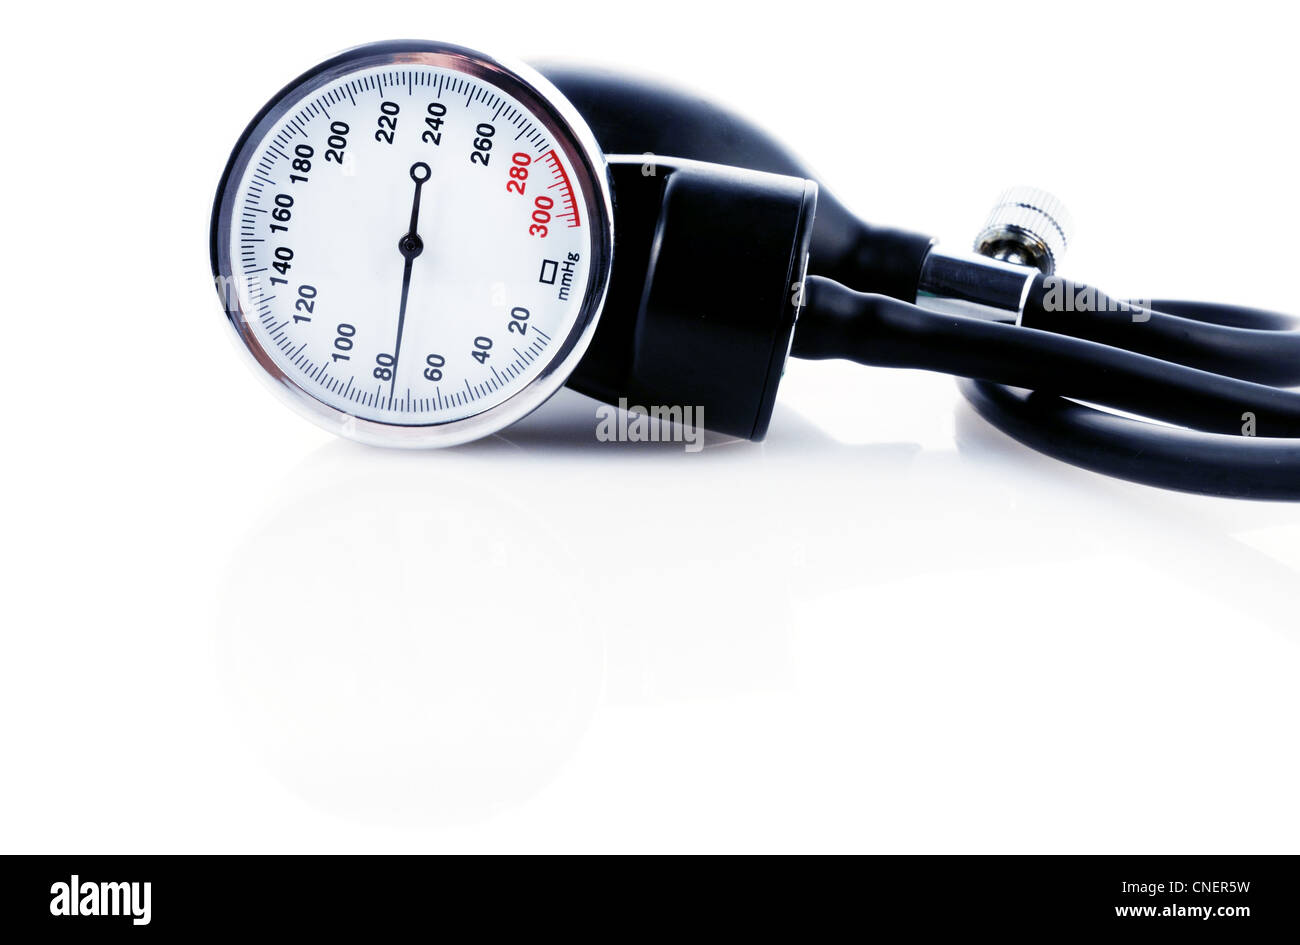 Medical tool for blood pressure measuring - Stock Image